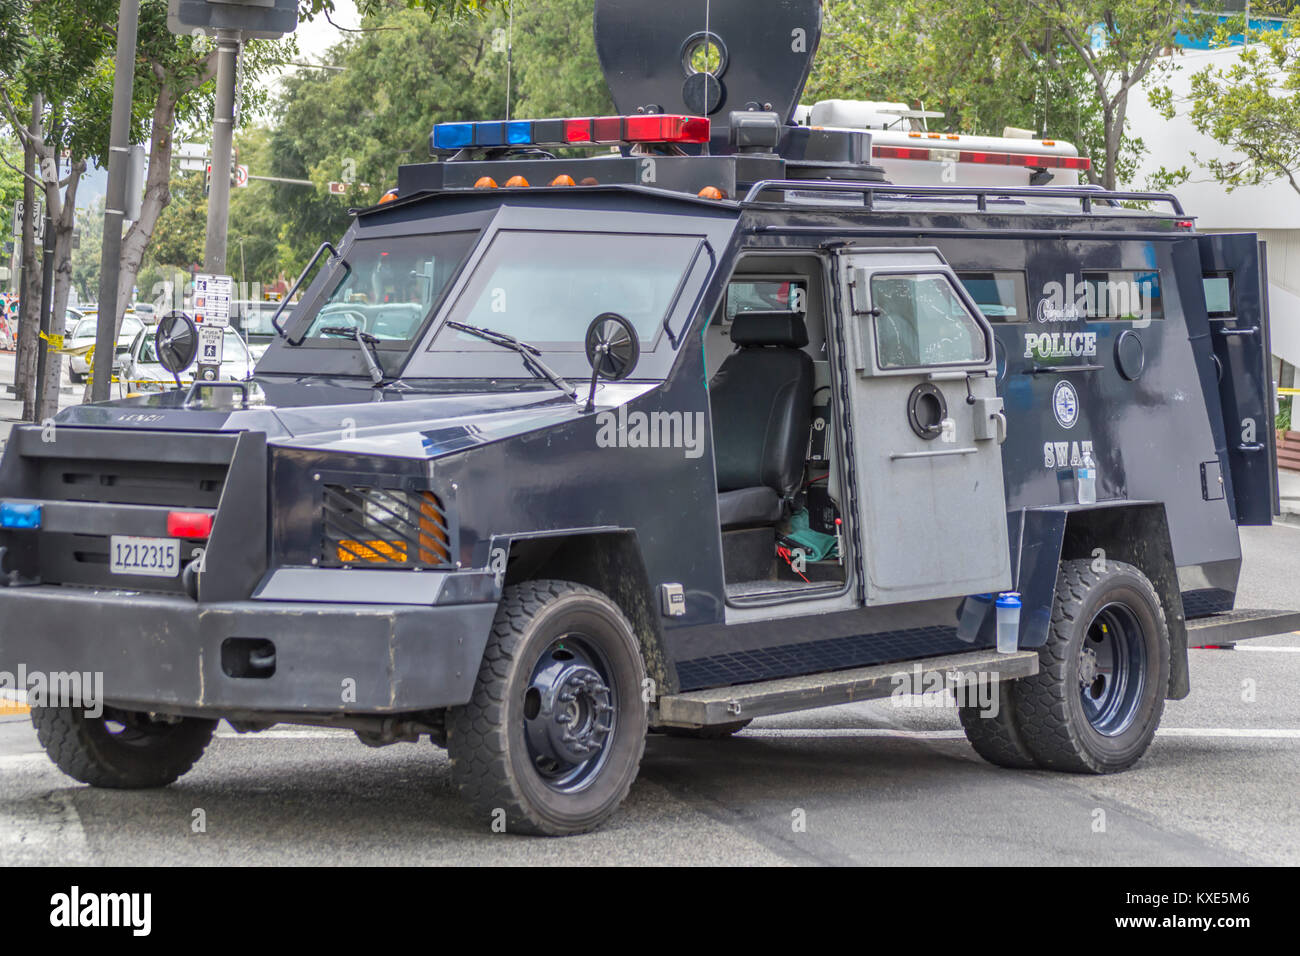 Armored police stock photos armored police stock images for Department of motor vehicles glendale ca